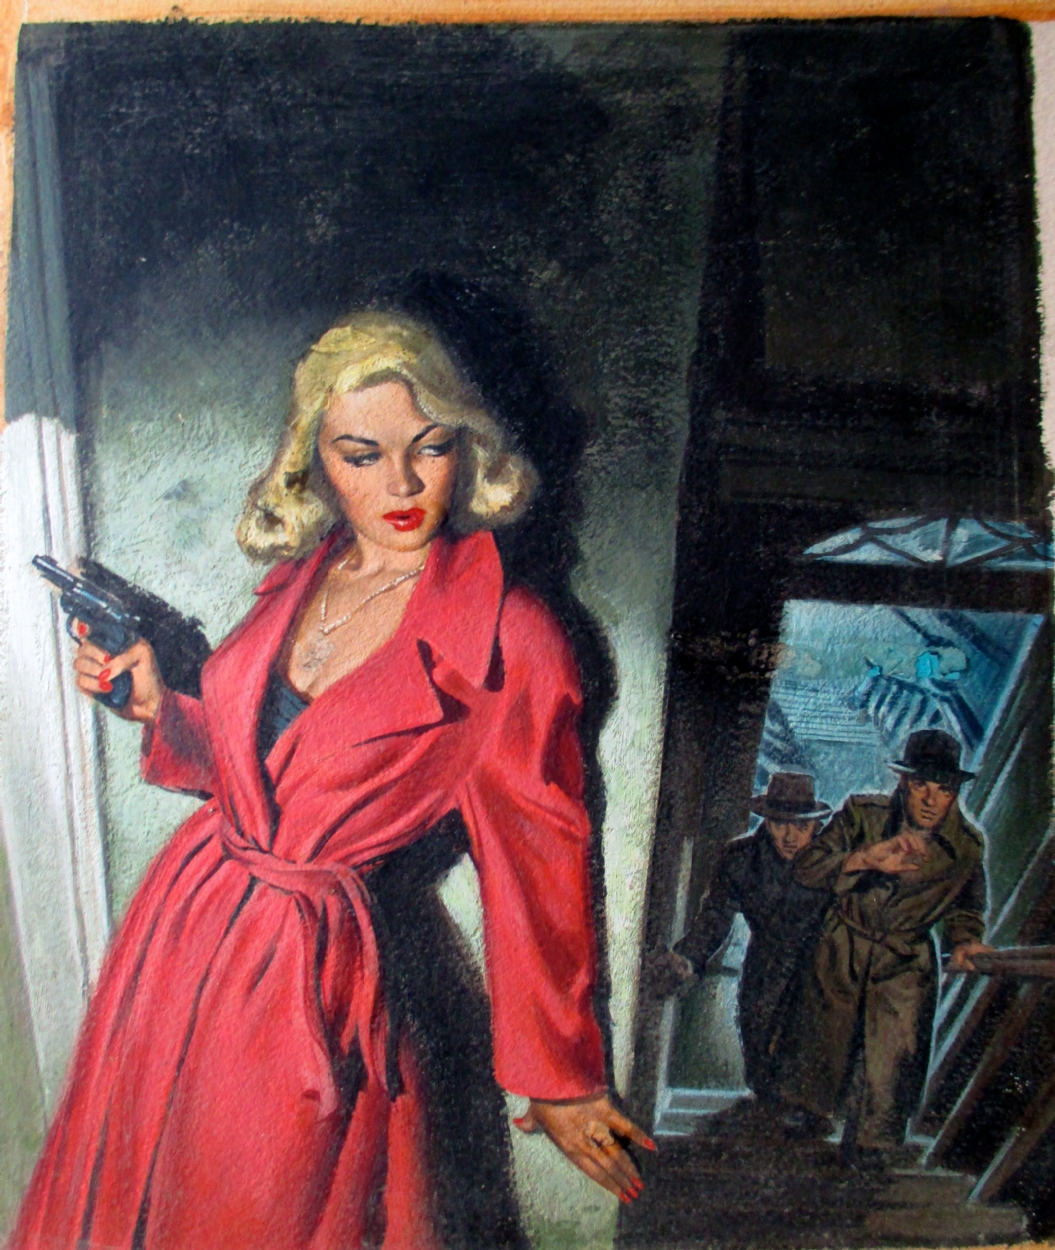 Book Cover Art Gallery : Sexy vintage paperback cover painting by lawrence hoffman